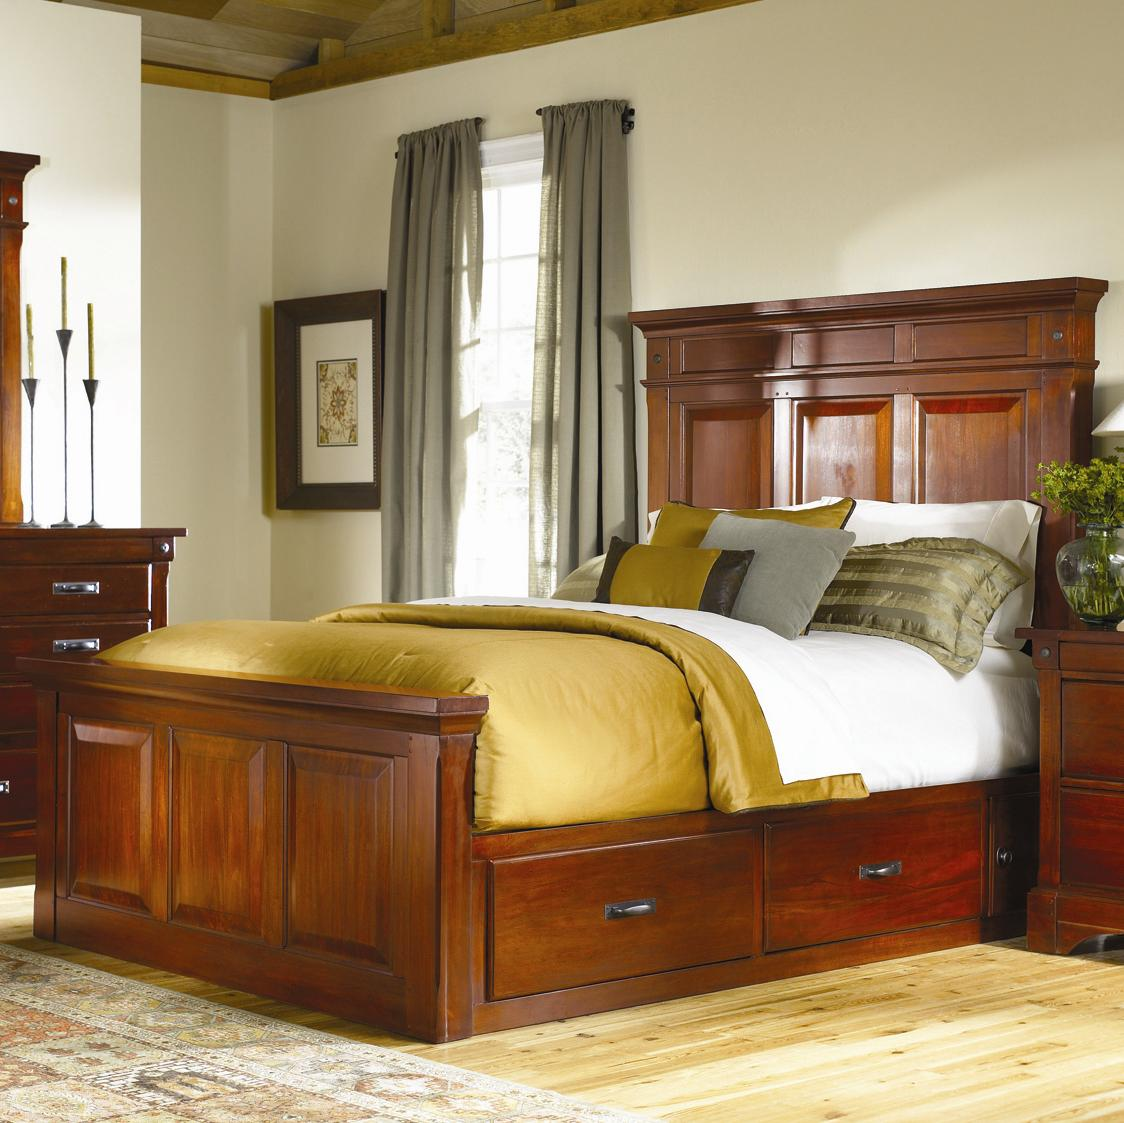 AAmerica Kalispell King Mantel Bed with Underbed Storage Boxes - Item Number: KAL-RM-5-13-1